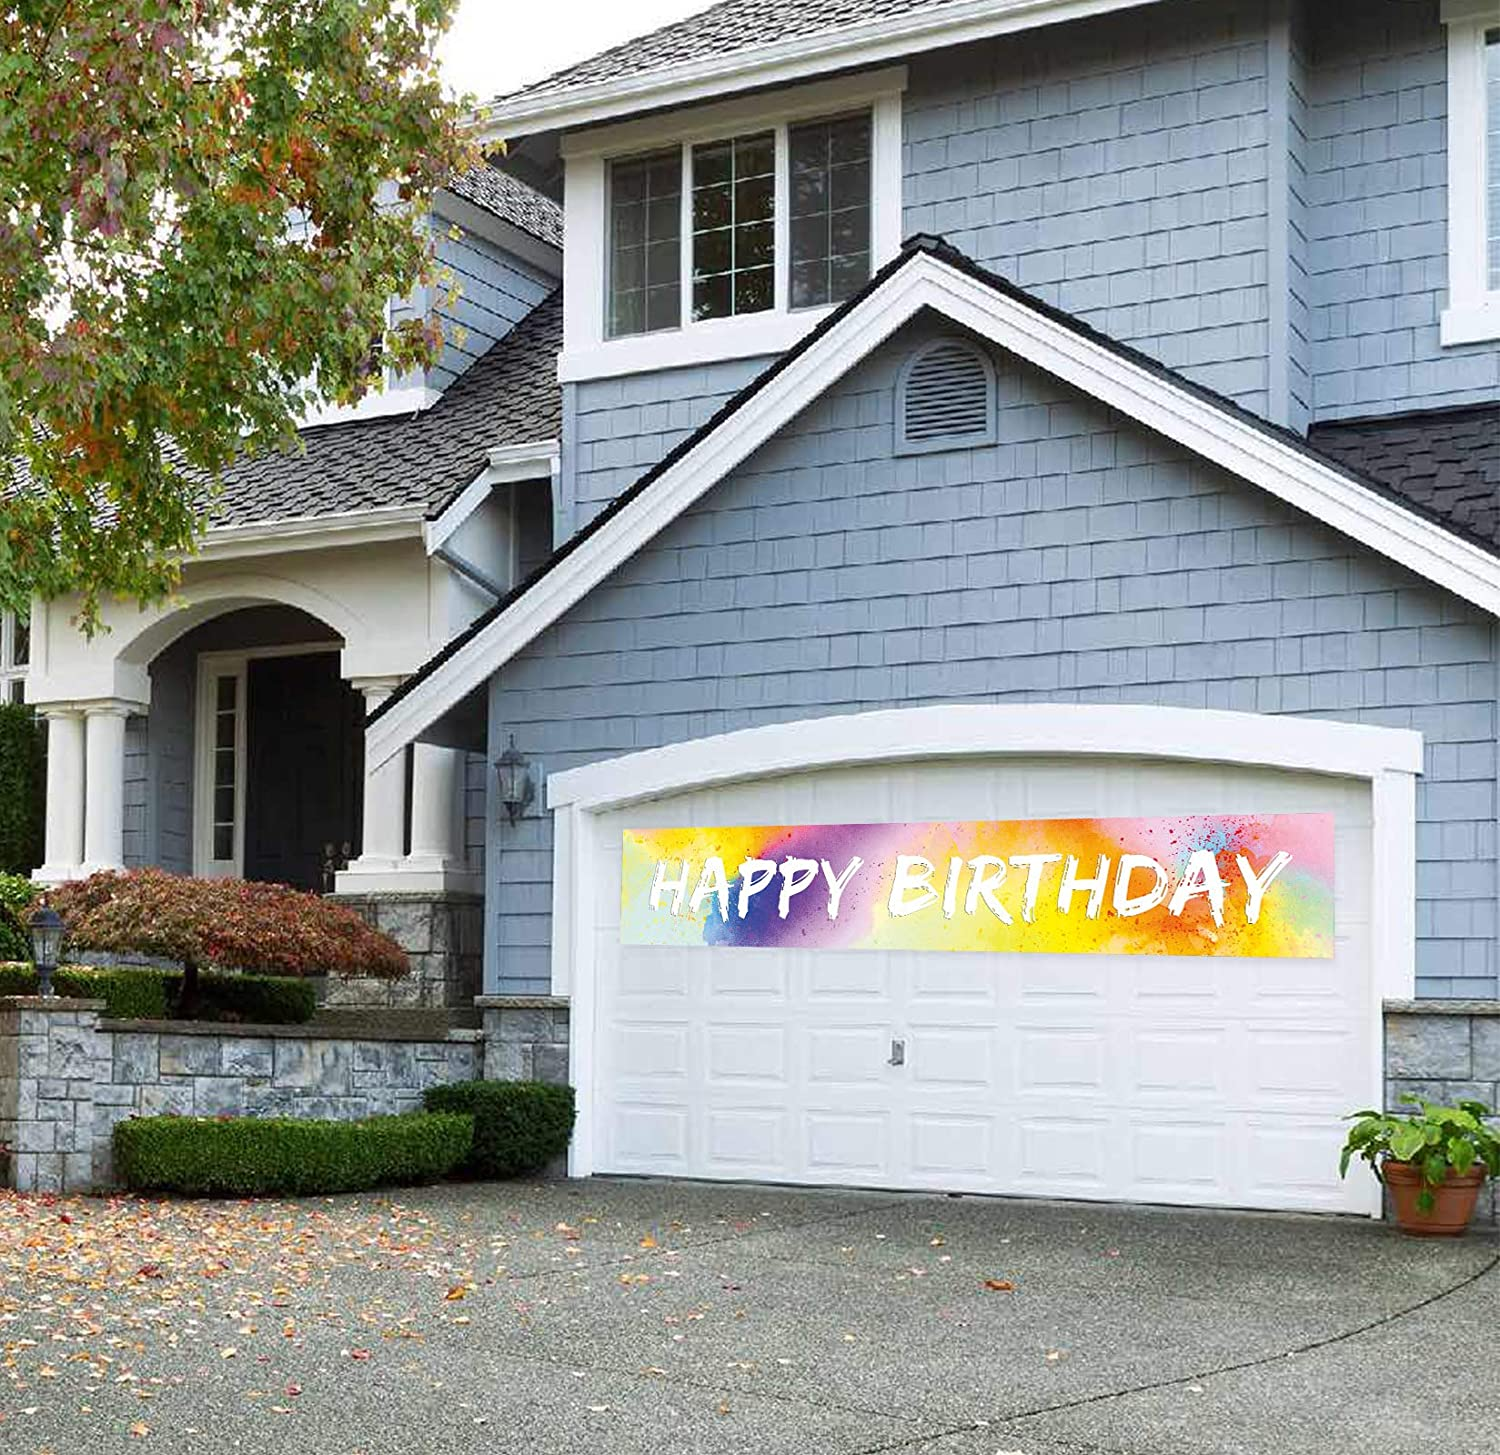 9.8 x 1.6 feet Large Green Happy Birthday Banner Rainbow Colorful Birthday Yard Sign Multicolor Birthday Party Decorations